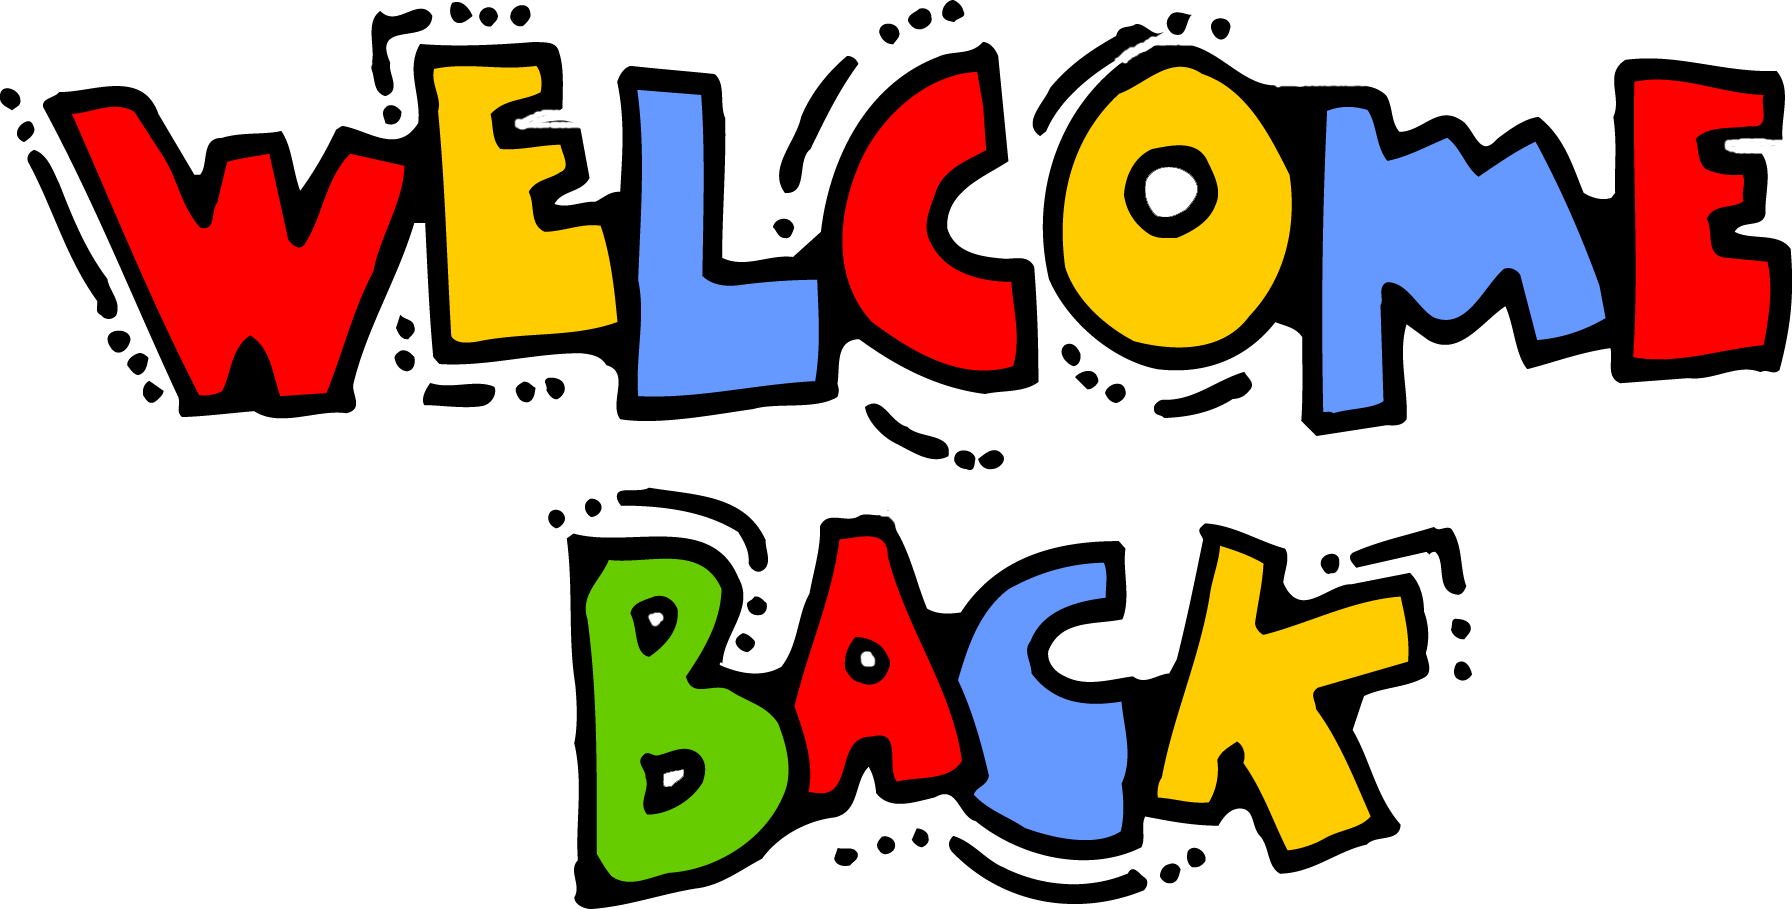 back clipart transparent